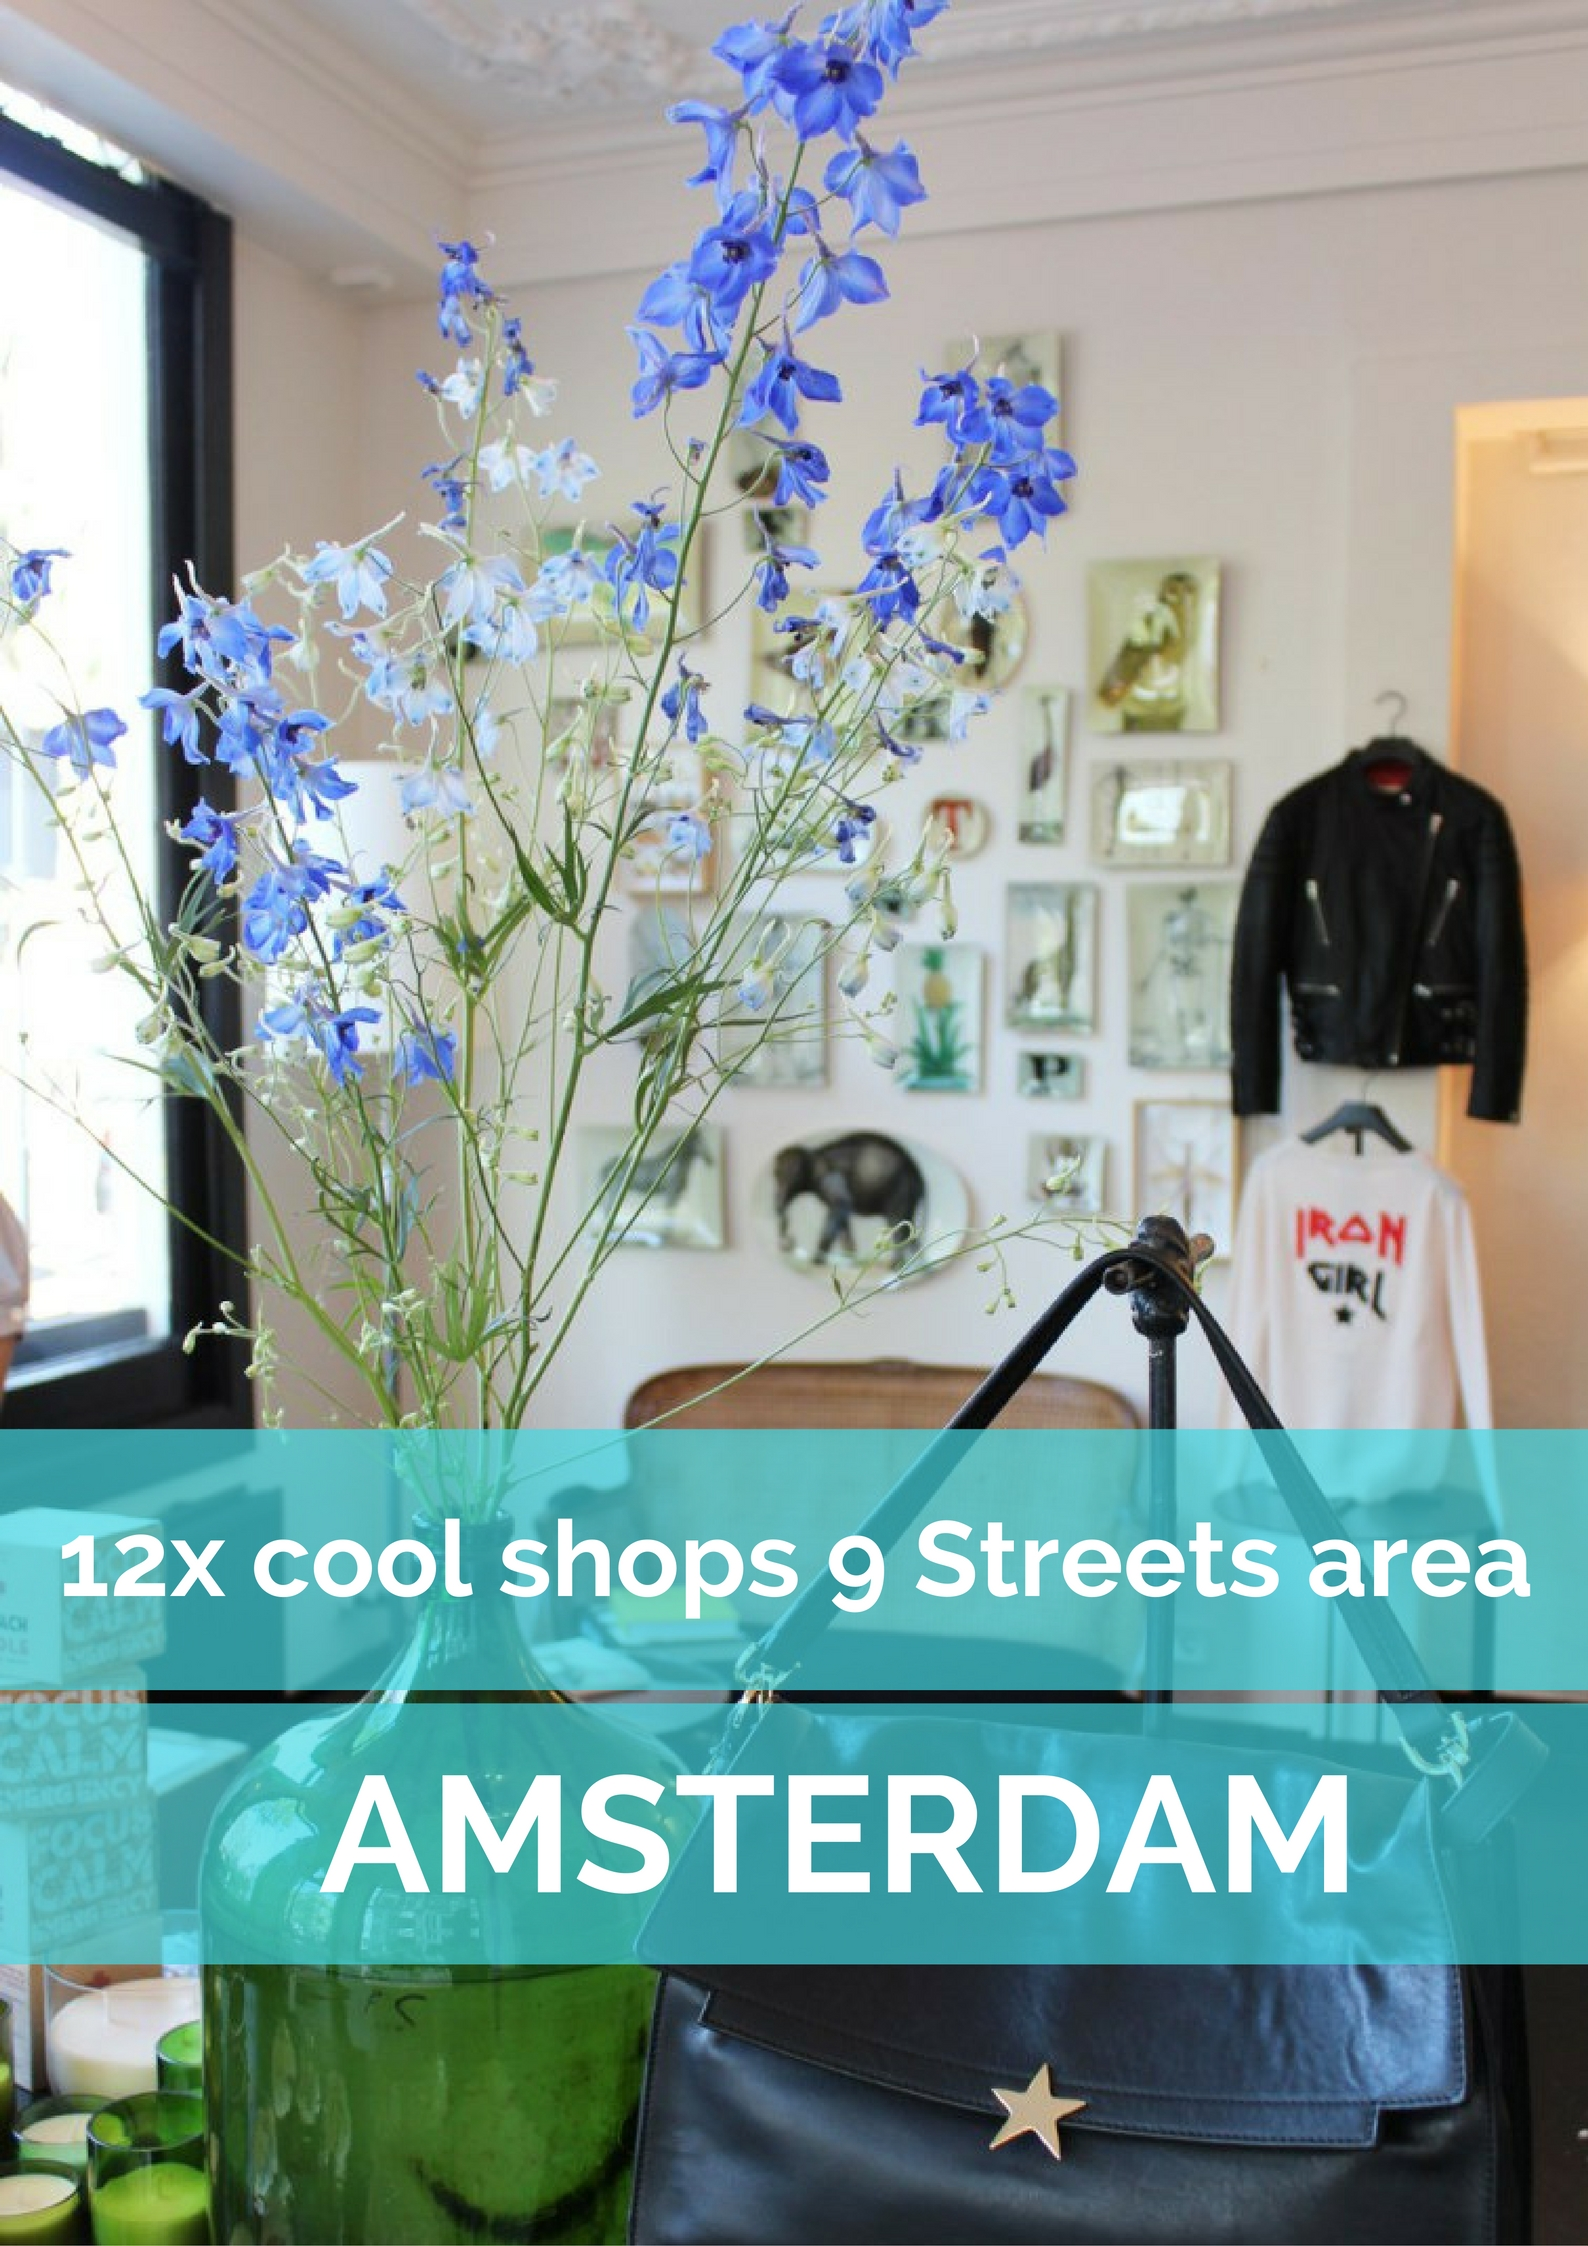 12 cool shops in the 9 Streets area in Amsterdam - Map of Joy